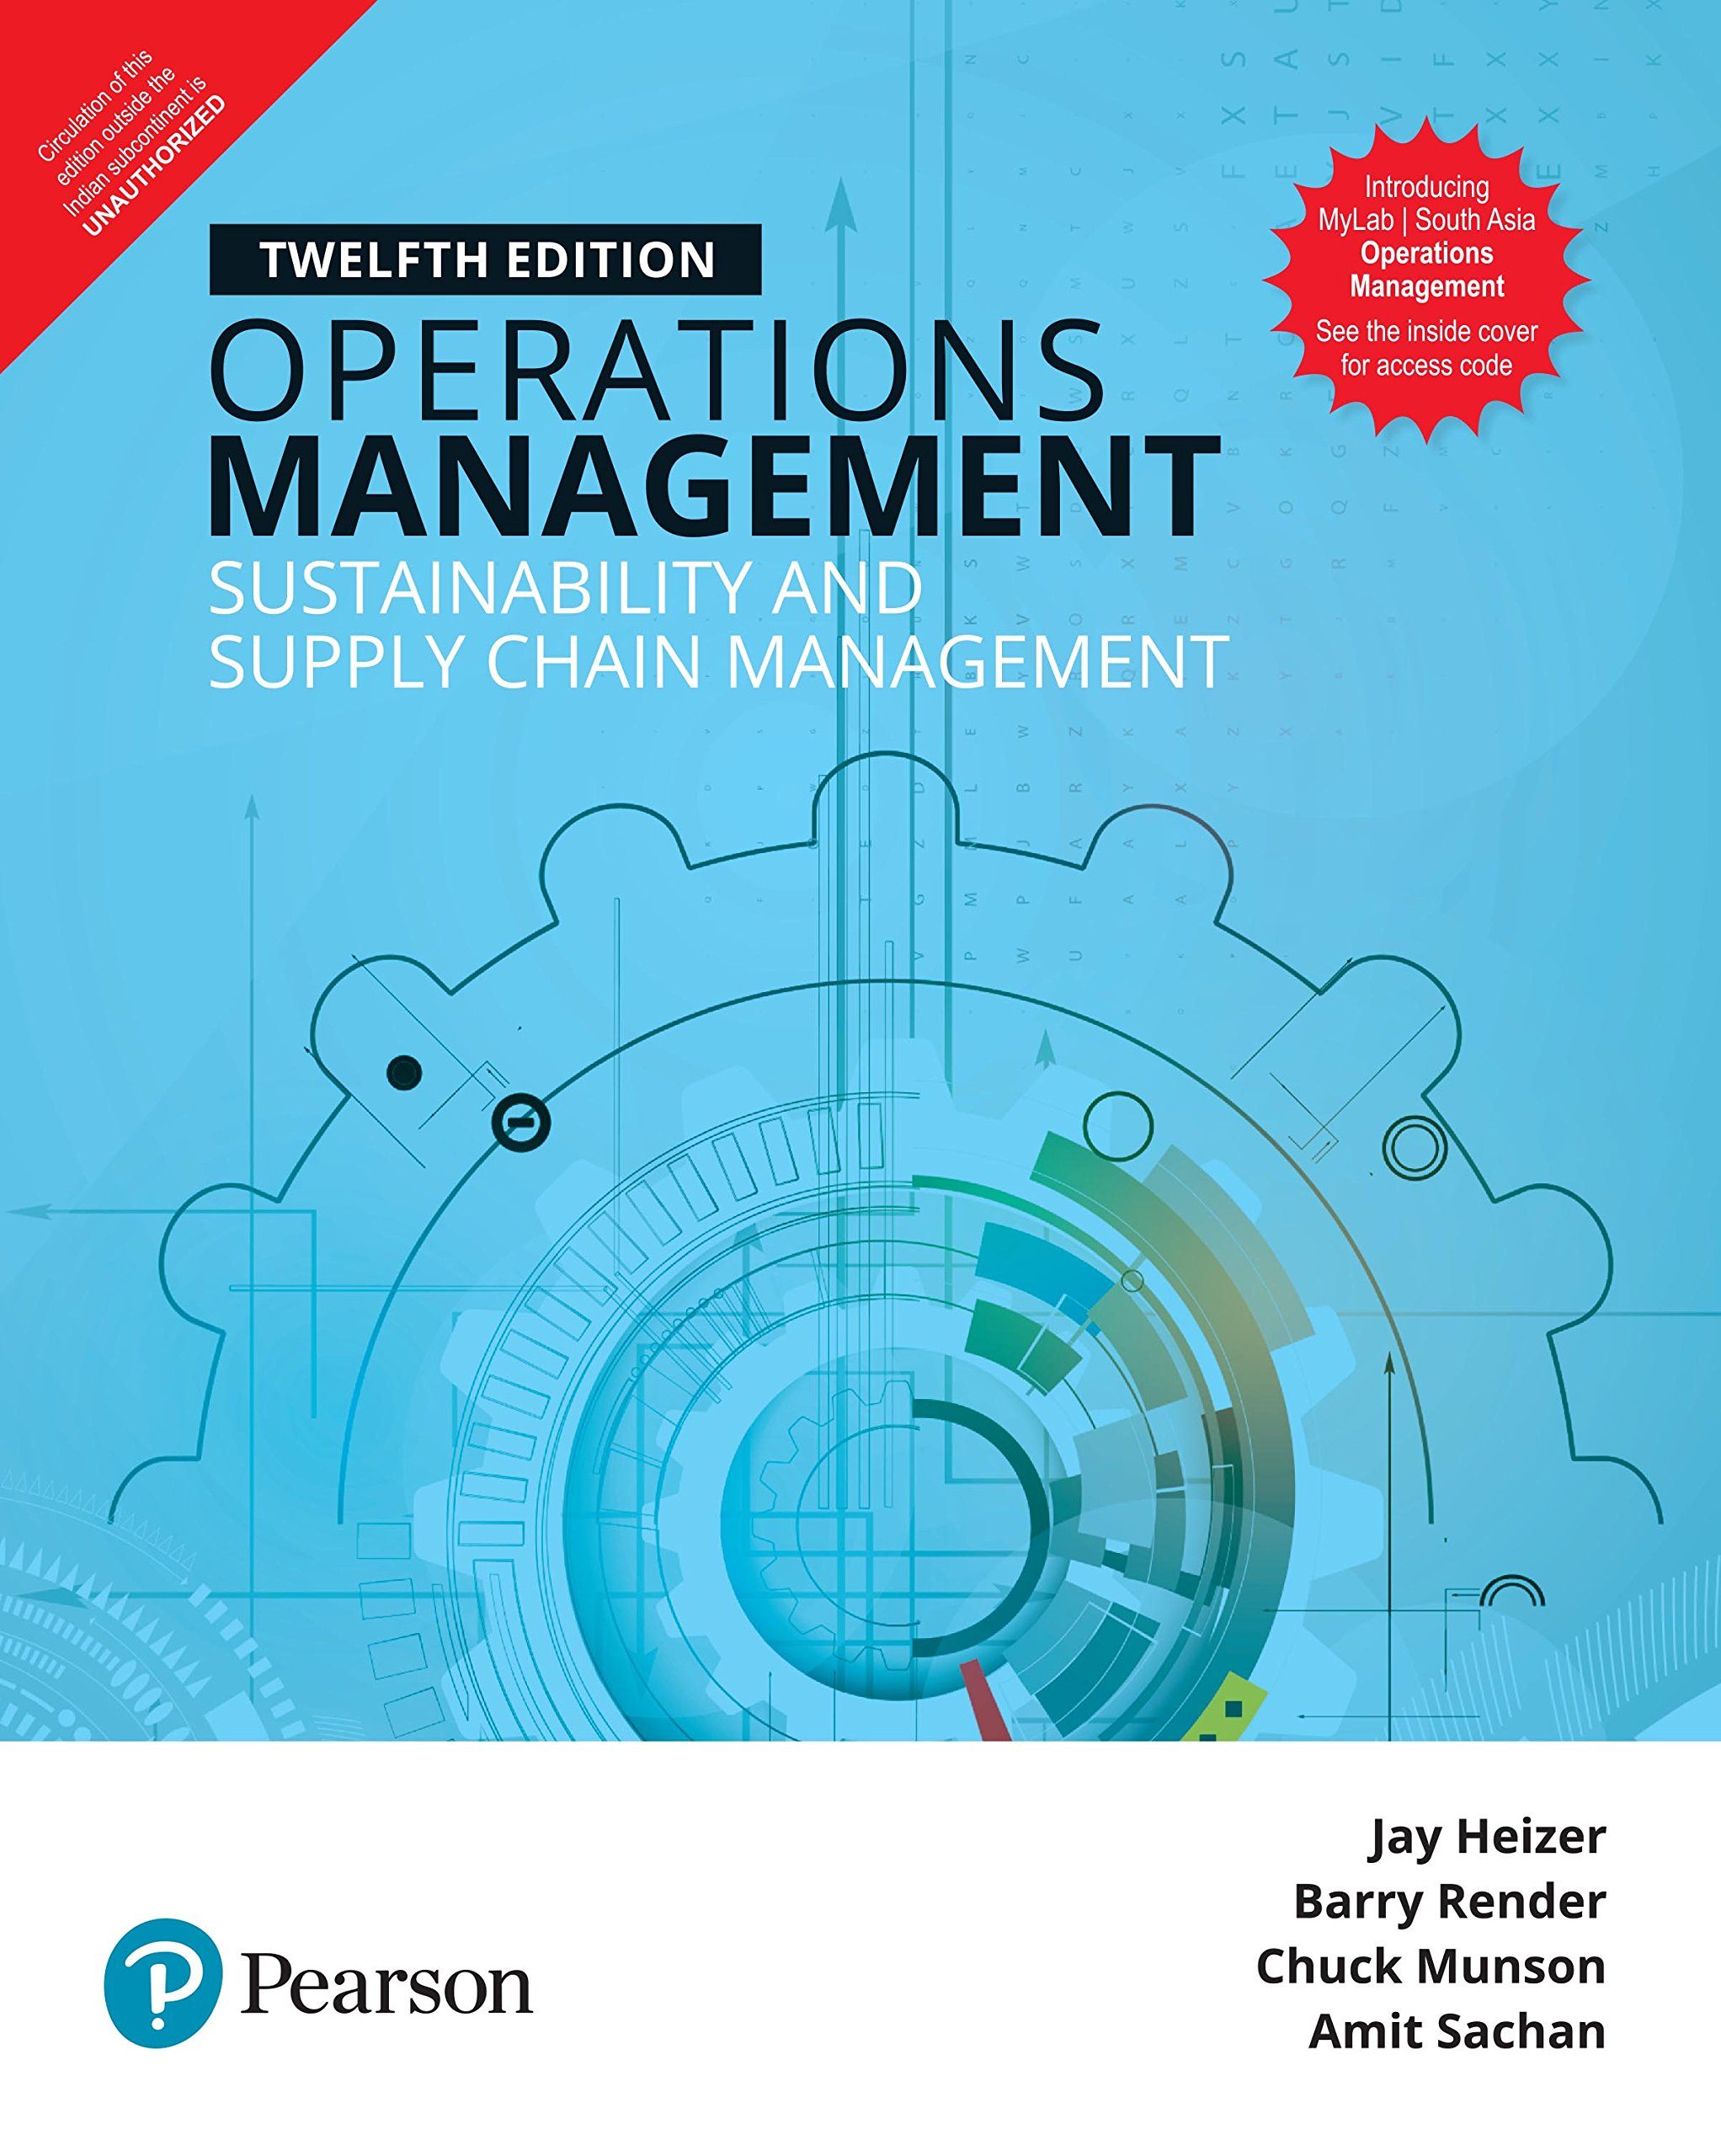 Buy management information system 14 ed book online at low prices operations management 12e fandeluxe Choice Image